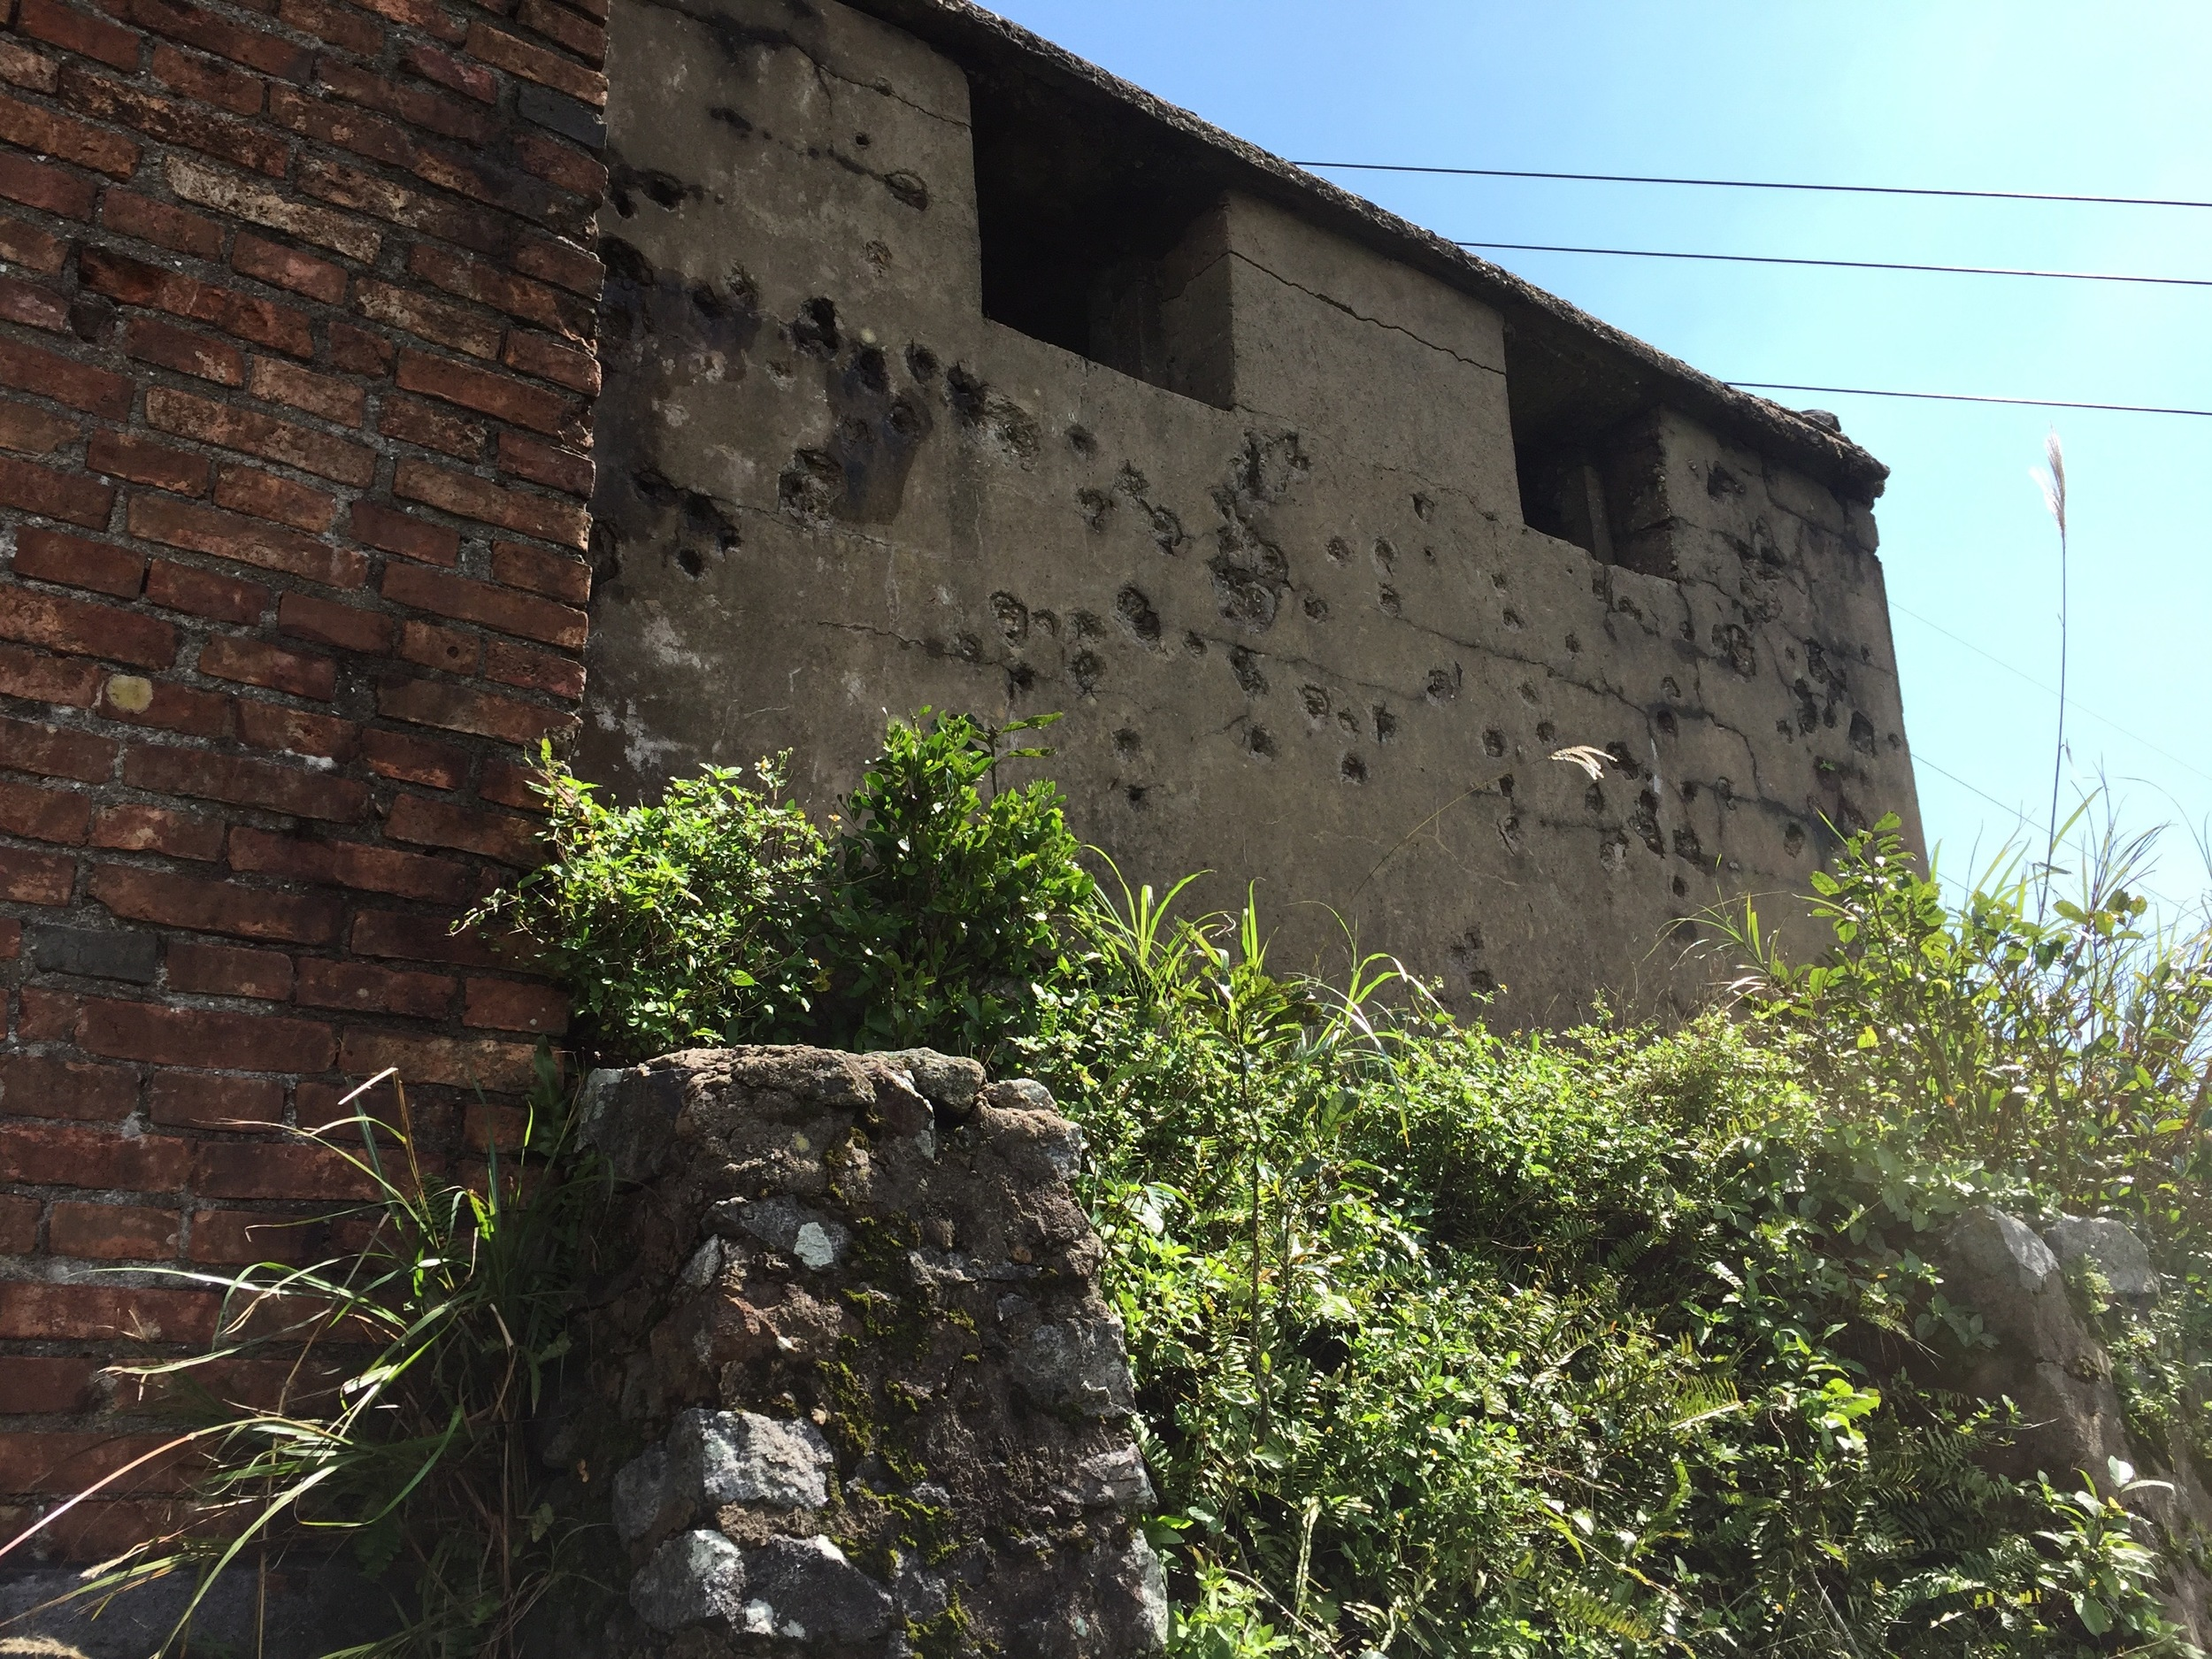 Bullet-hole riddled wall of an old bunker near Danang.